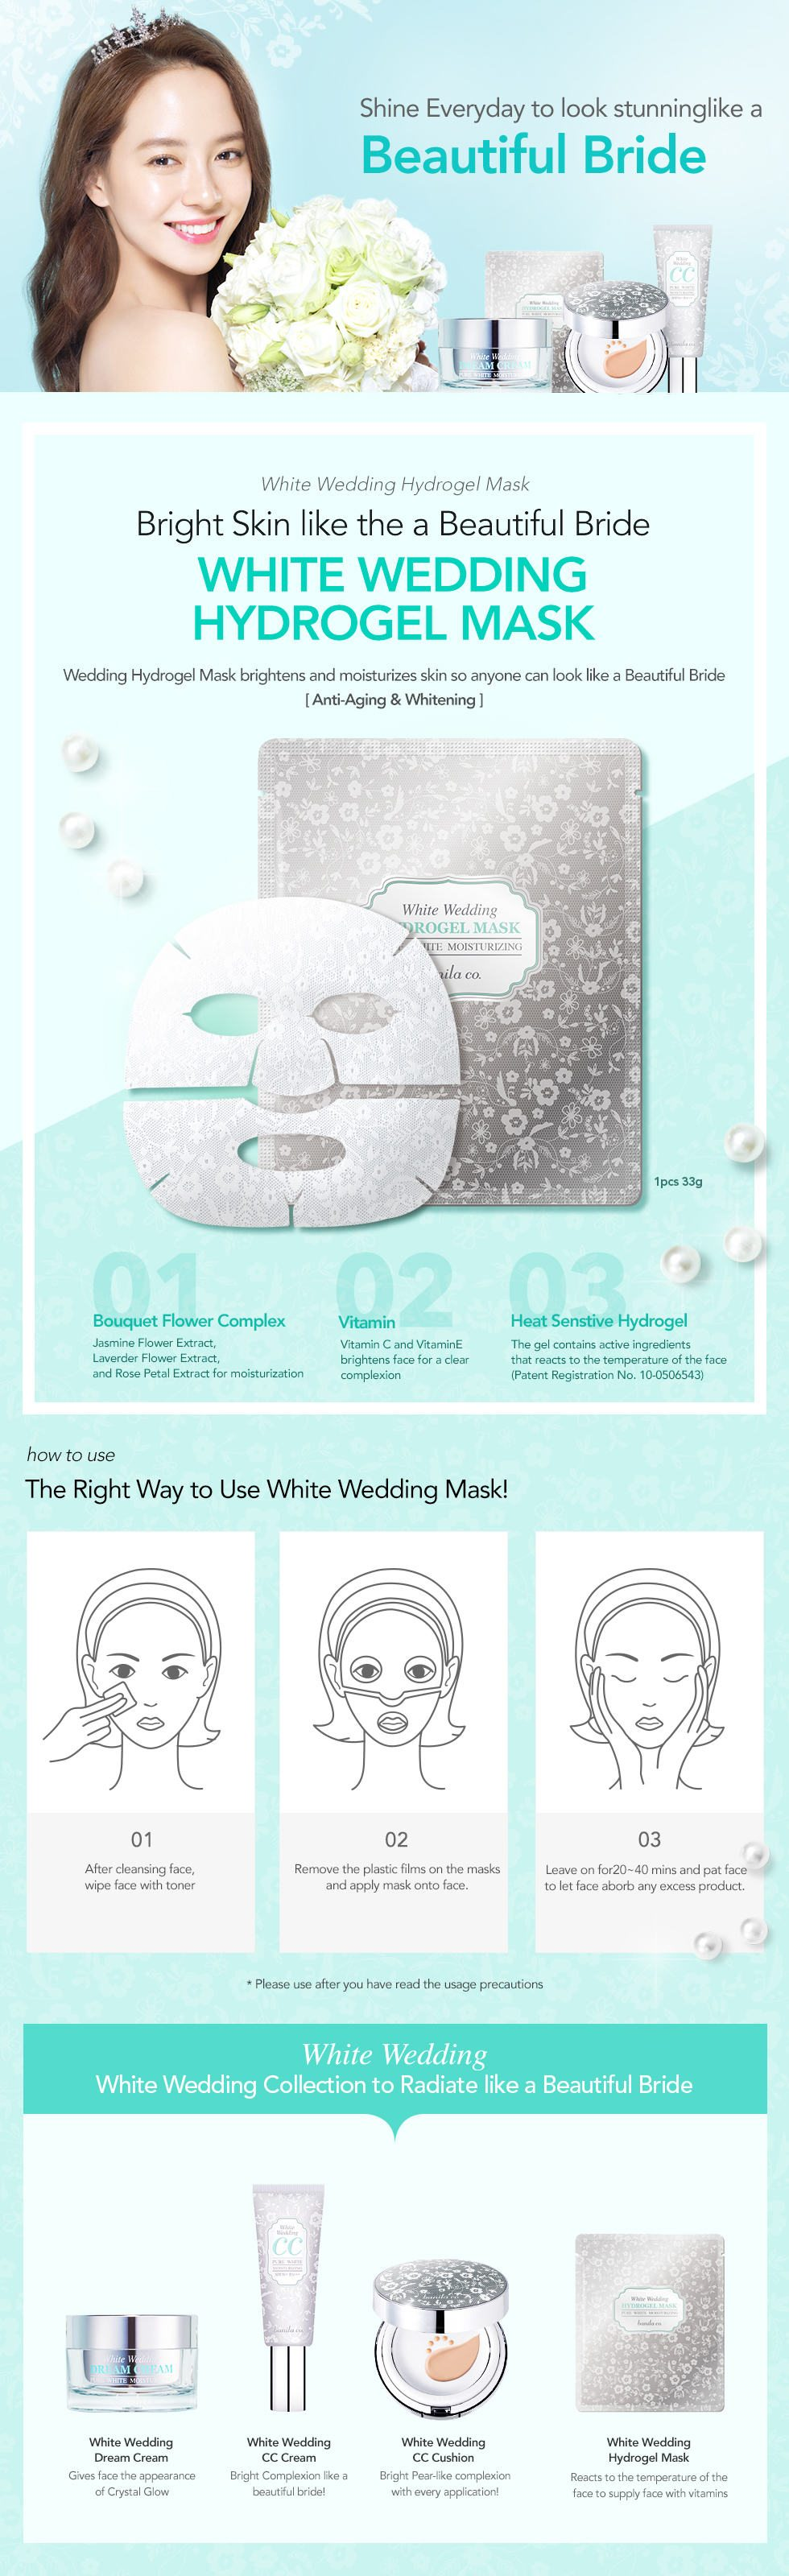 Banila Co White Wedding Hydrogel Mask 35g malaysia singapore indonesia